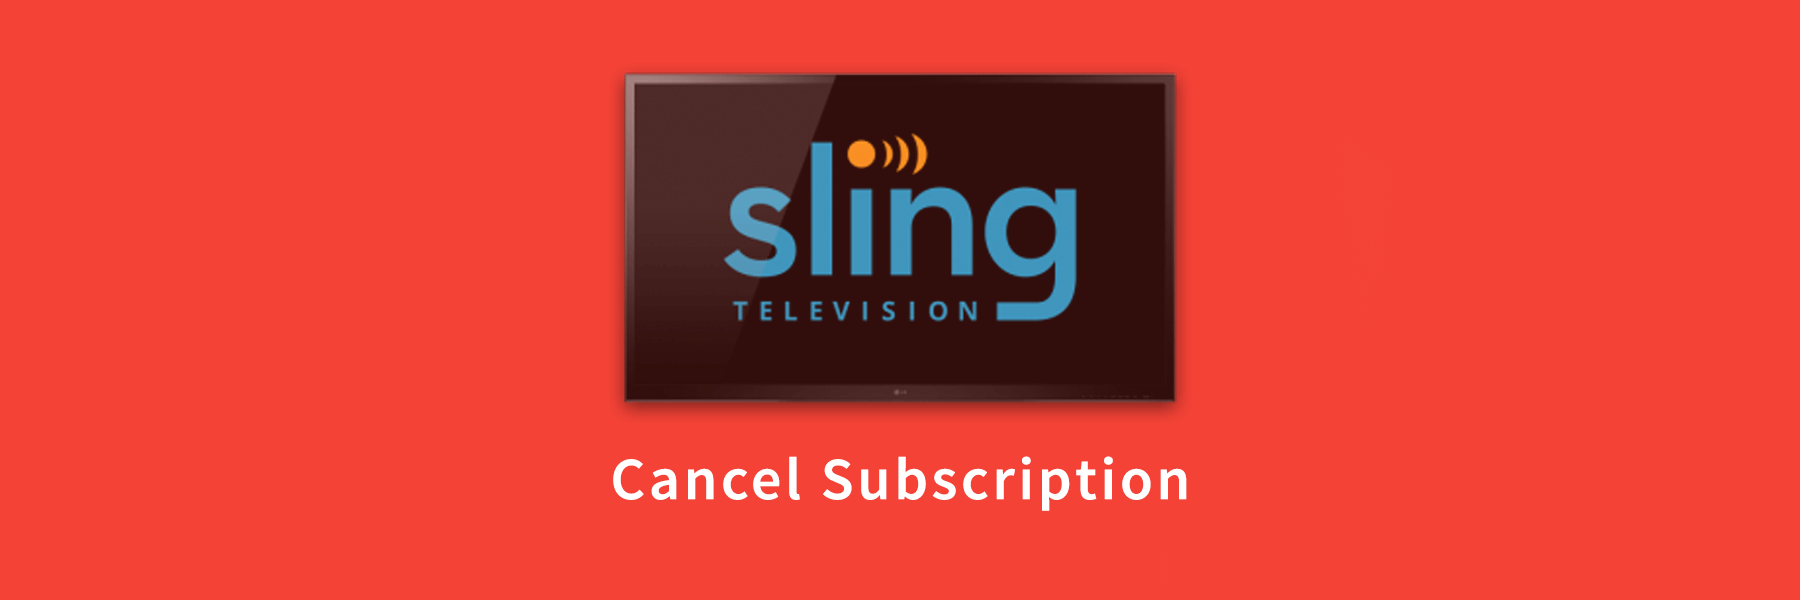 Cancel-Sling-Tv-Subscription